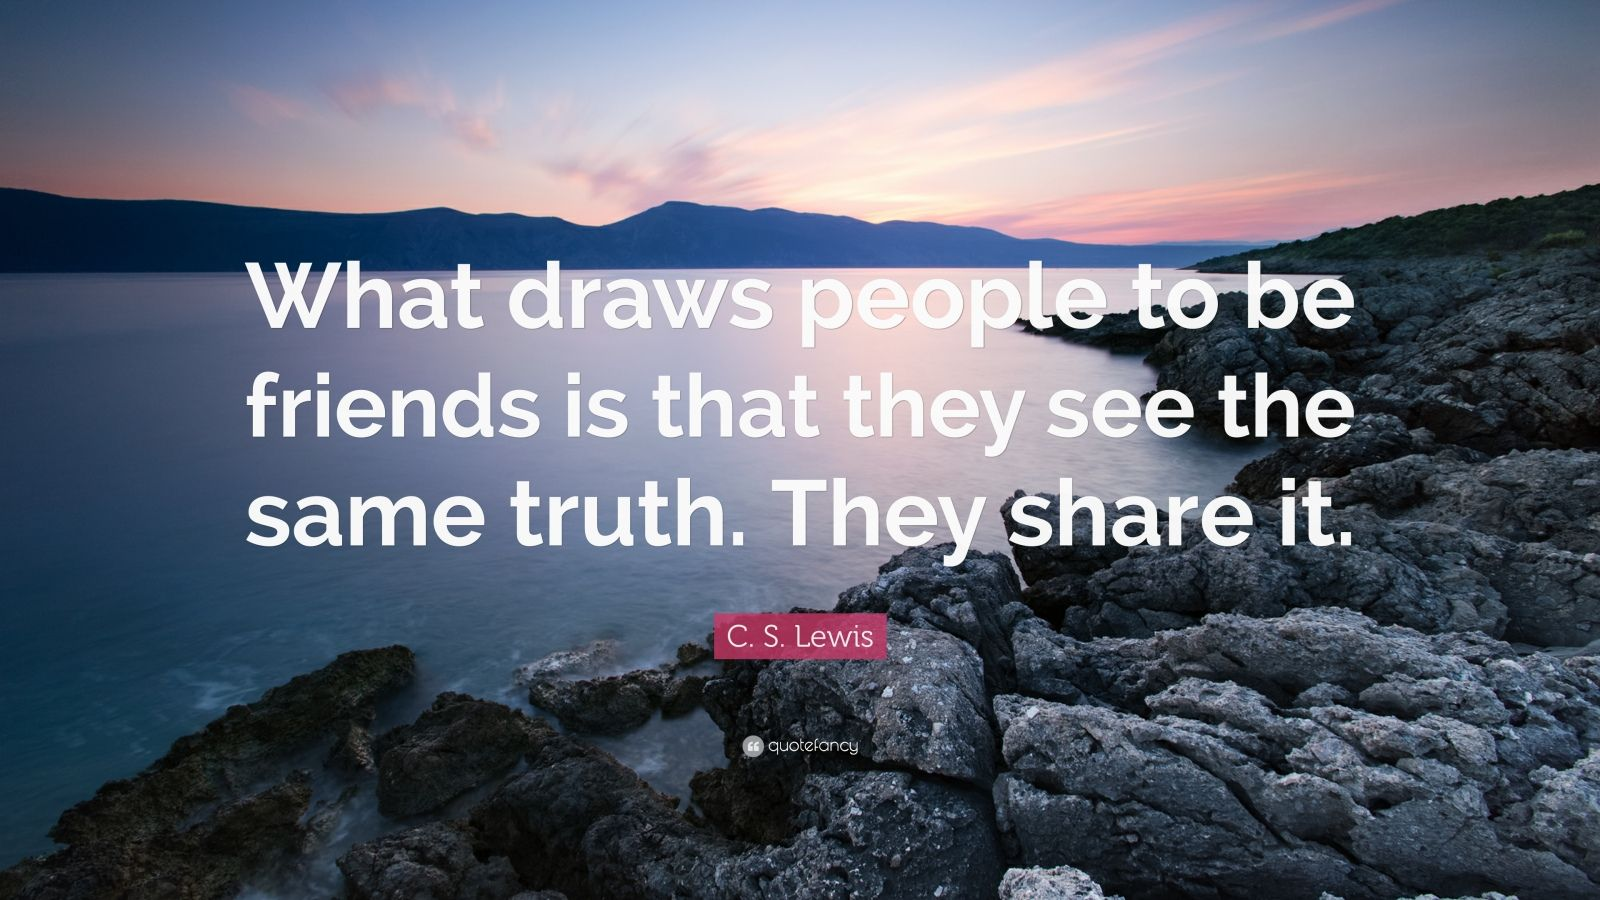 c s lewis quote what draws people to be friends is that they see the